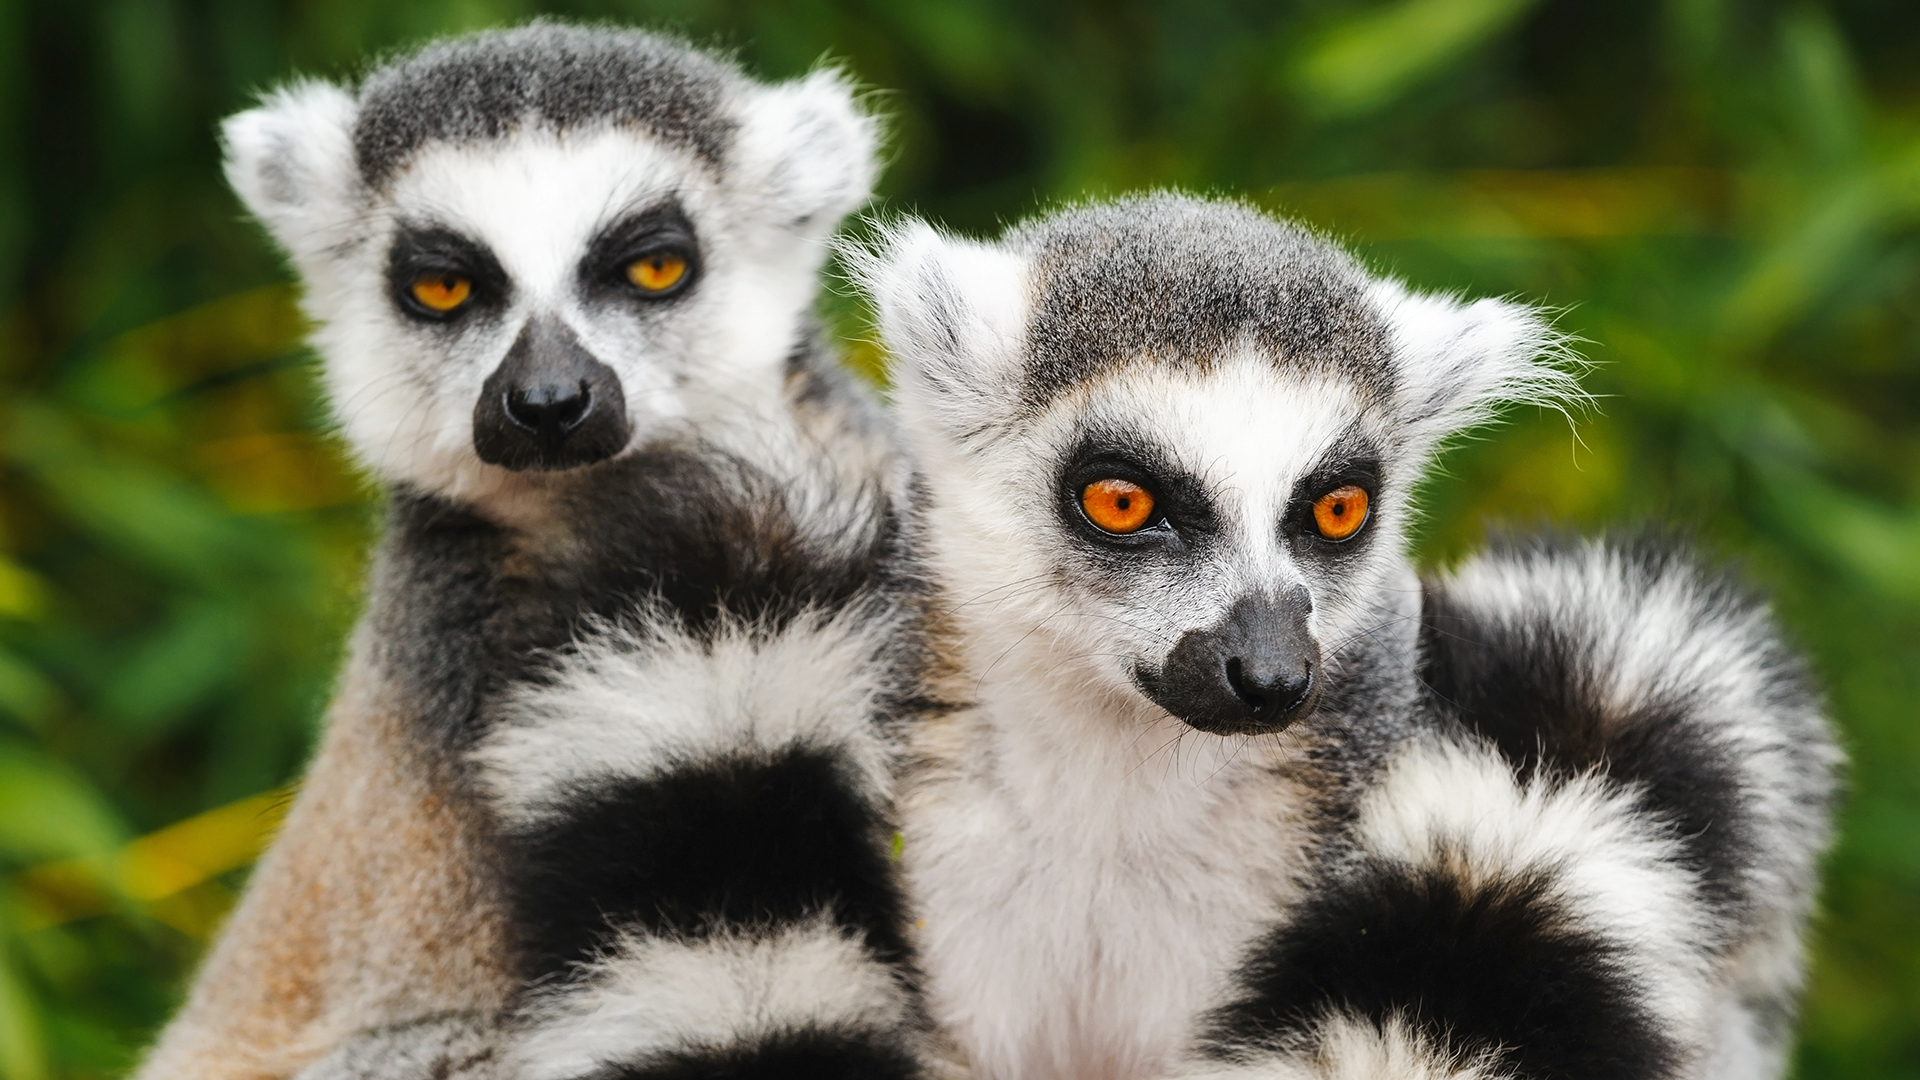 Two ring-tailed lemurs sit together.